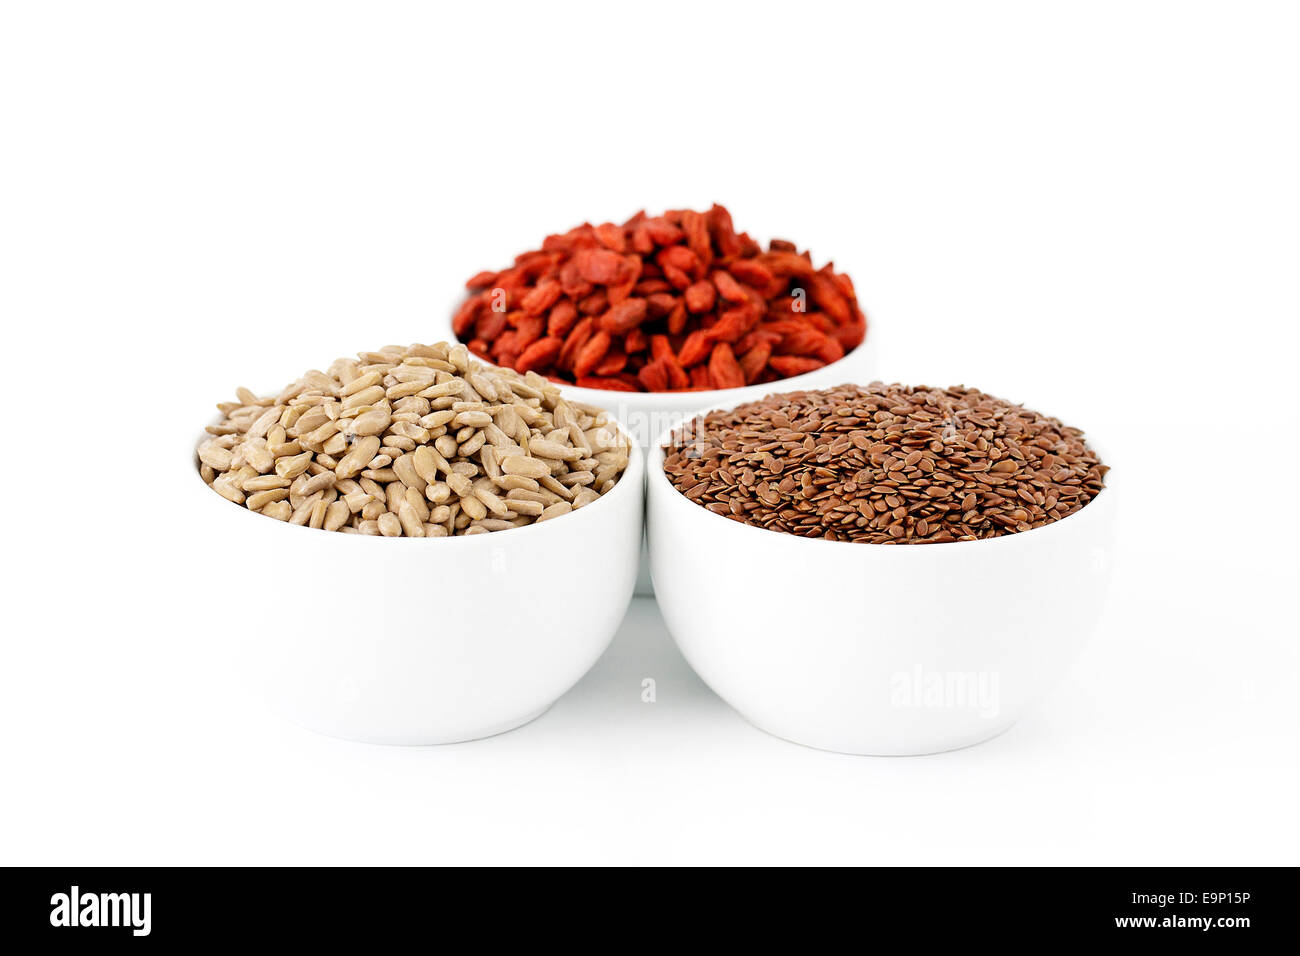 Flaxseeds, sunflower seeds and goji berries on white background - Stock Image